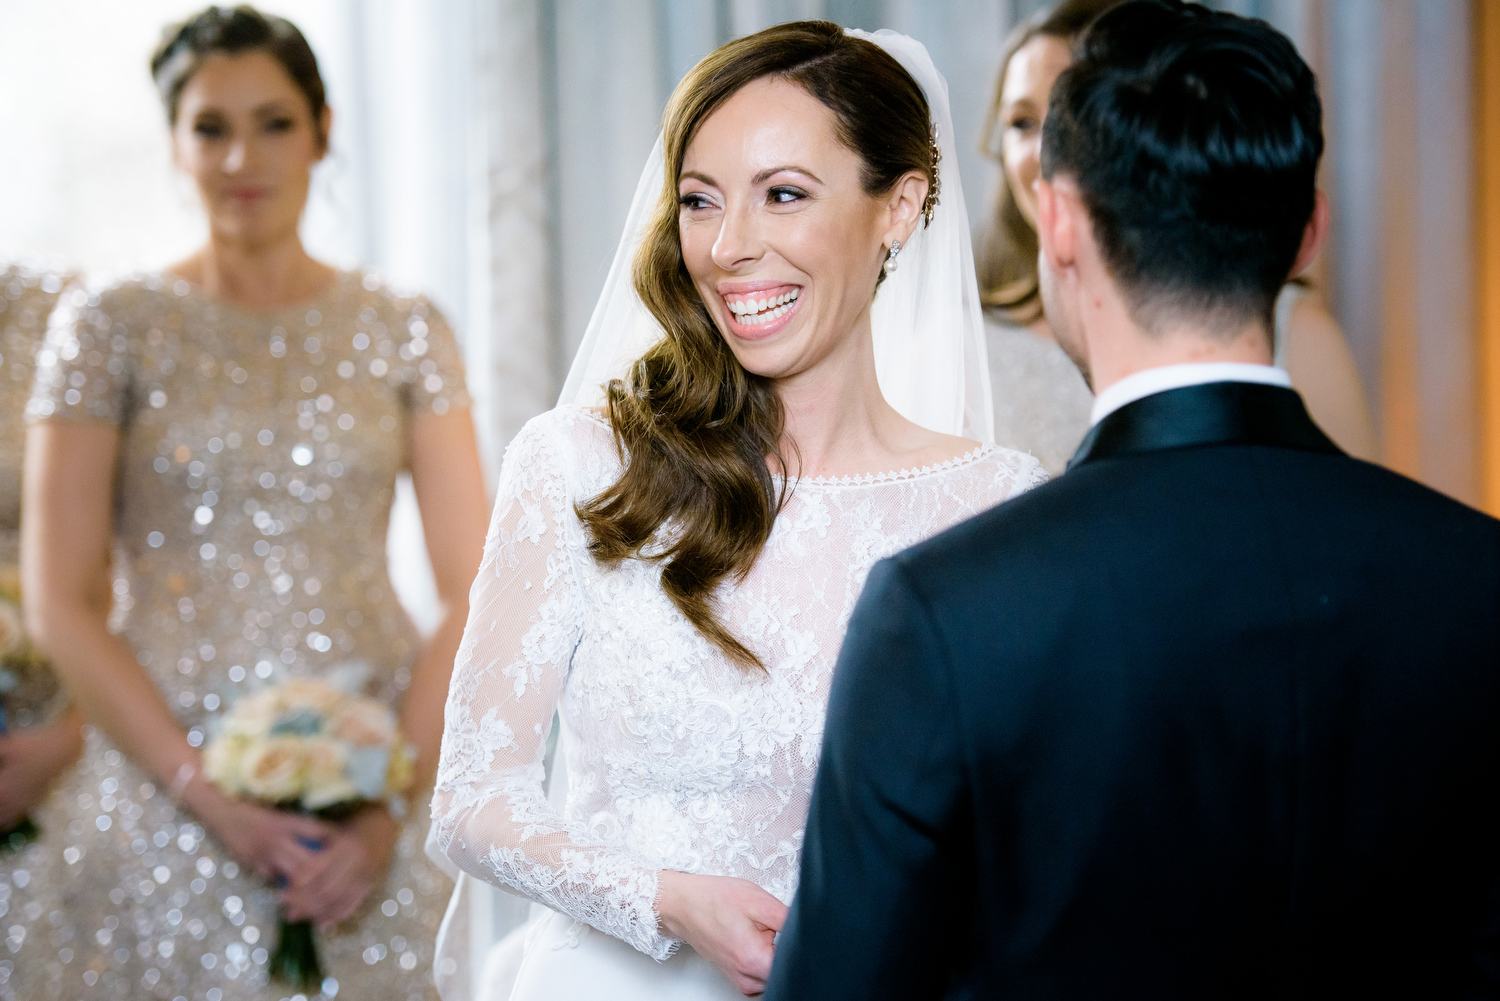 Bride and groom share a laugh during their Thompson Chicago wedding ceremony.